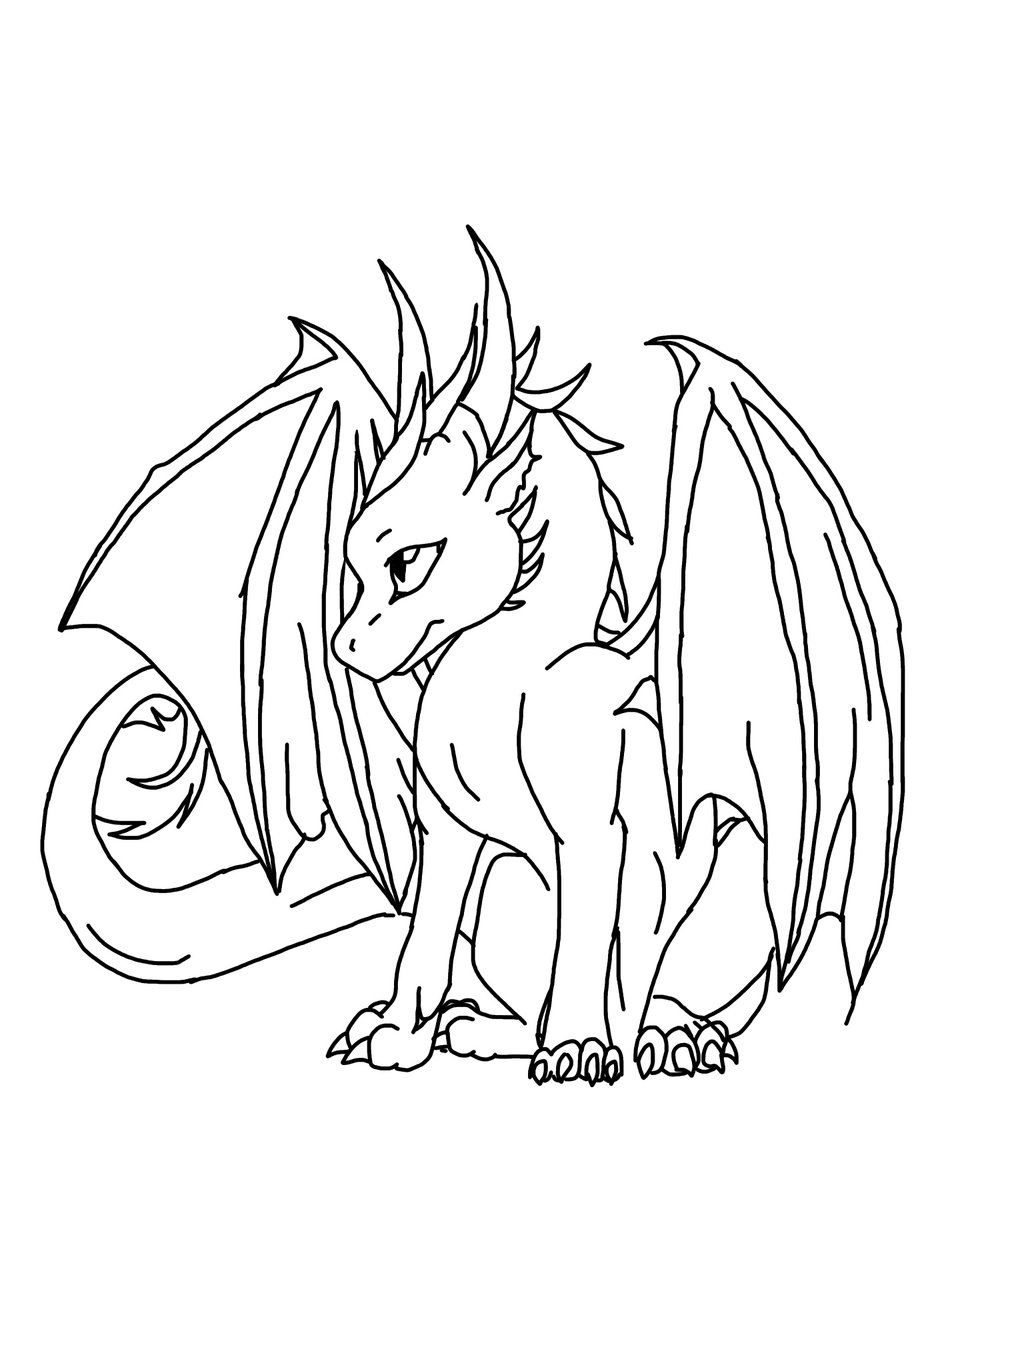 Pix For Cool Easy Dragons Drawings B Lamb Pinterest Dragon